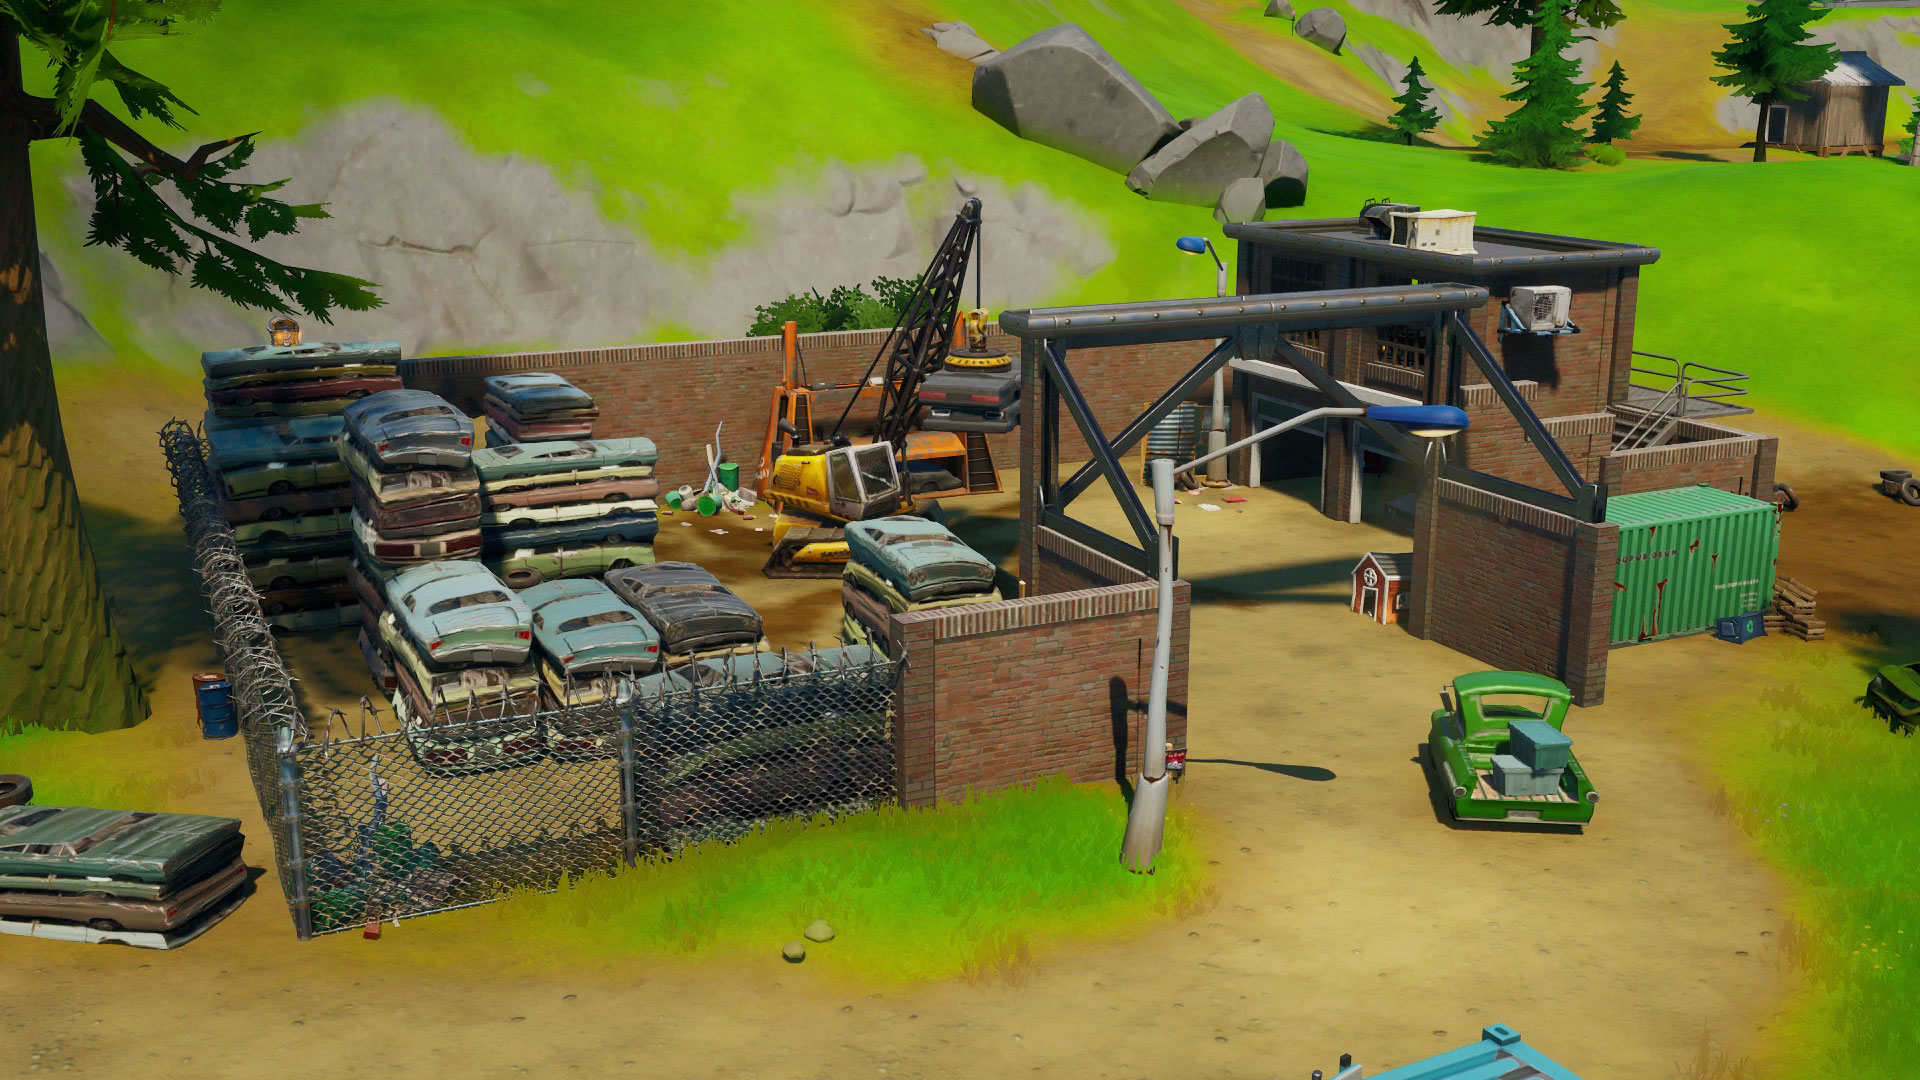 How To Collect Metal At Hydro 16 Or Compact Cars In Fortnite